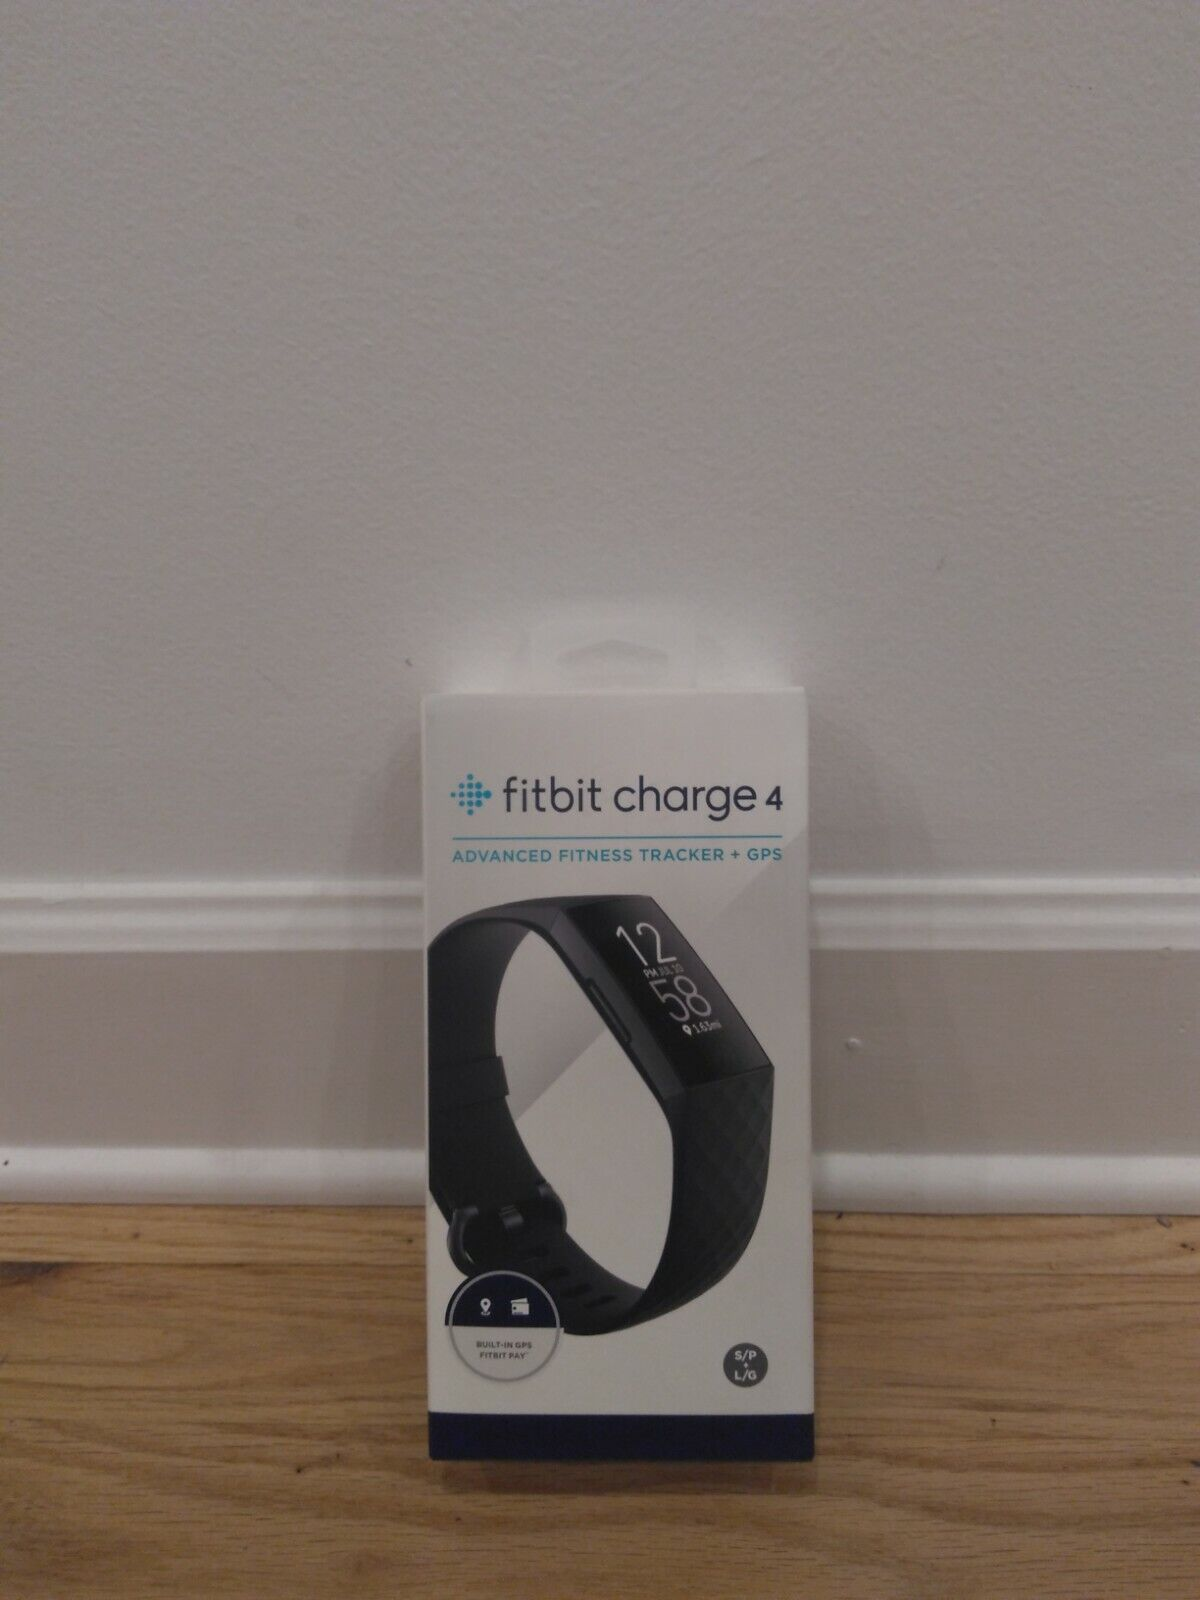 Fitbit Charge 4 Fitness Tracker + GPS - BLACK - RETURNED - PARTS OR NOT WORKING black charge fitbit fitness gps not parts returned tracker working